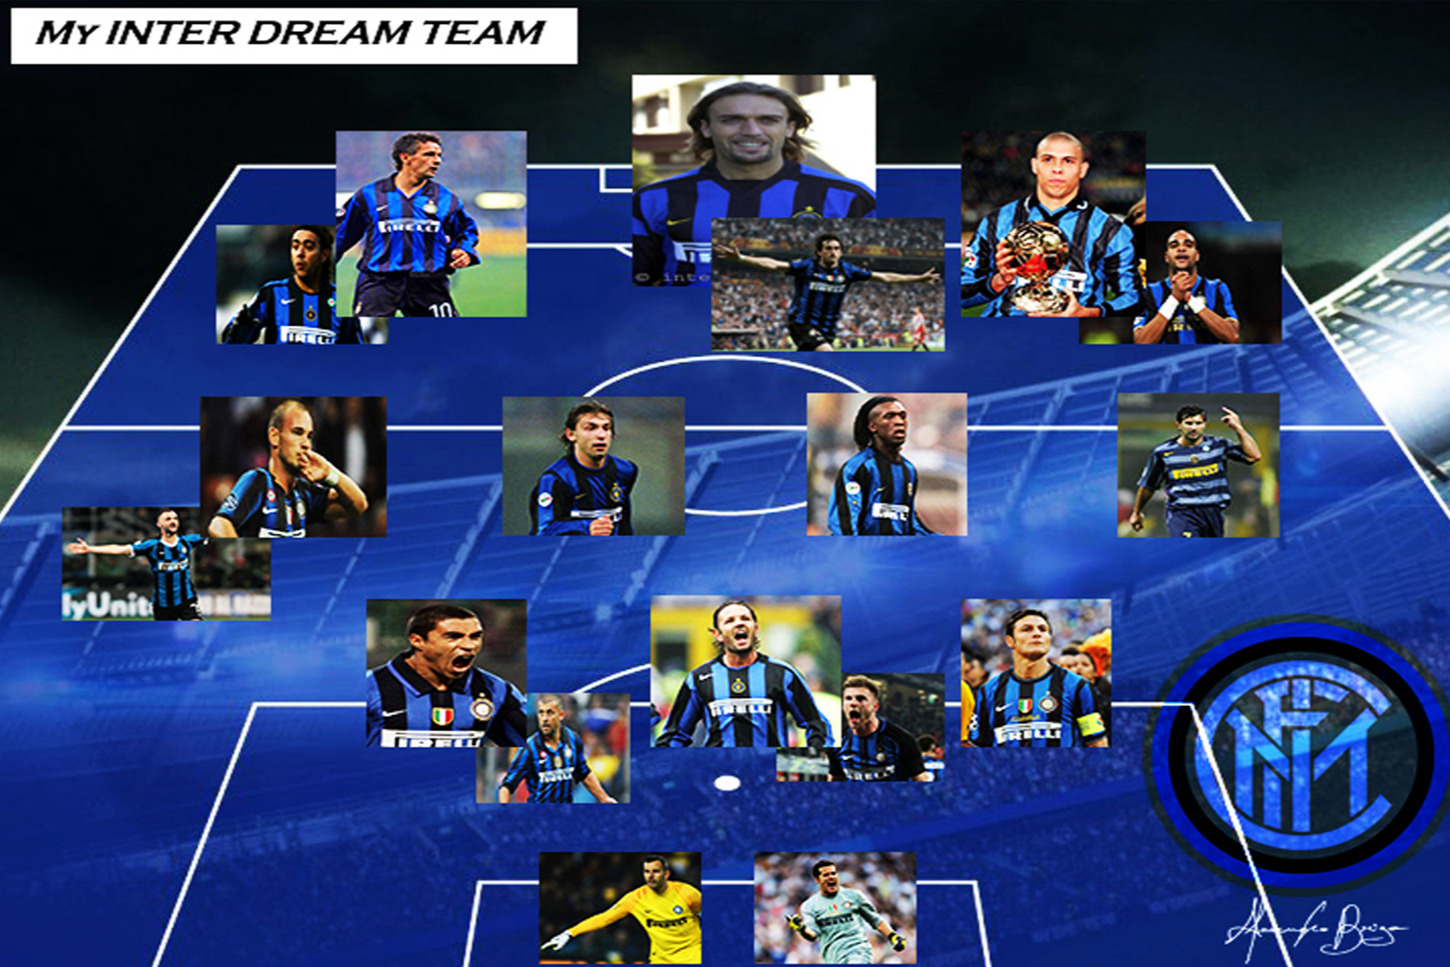 inter dream team